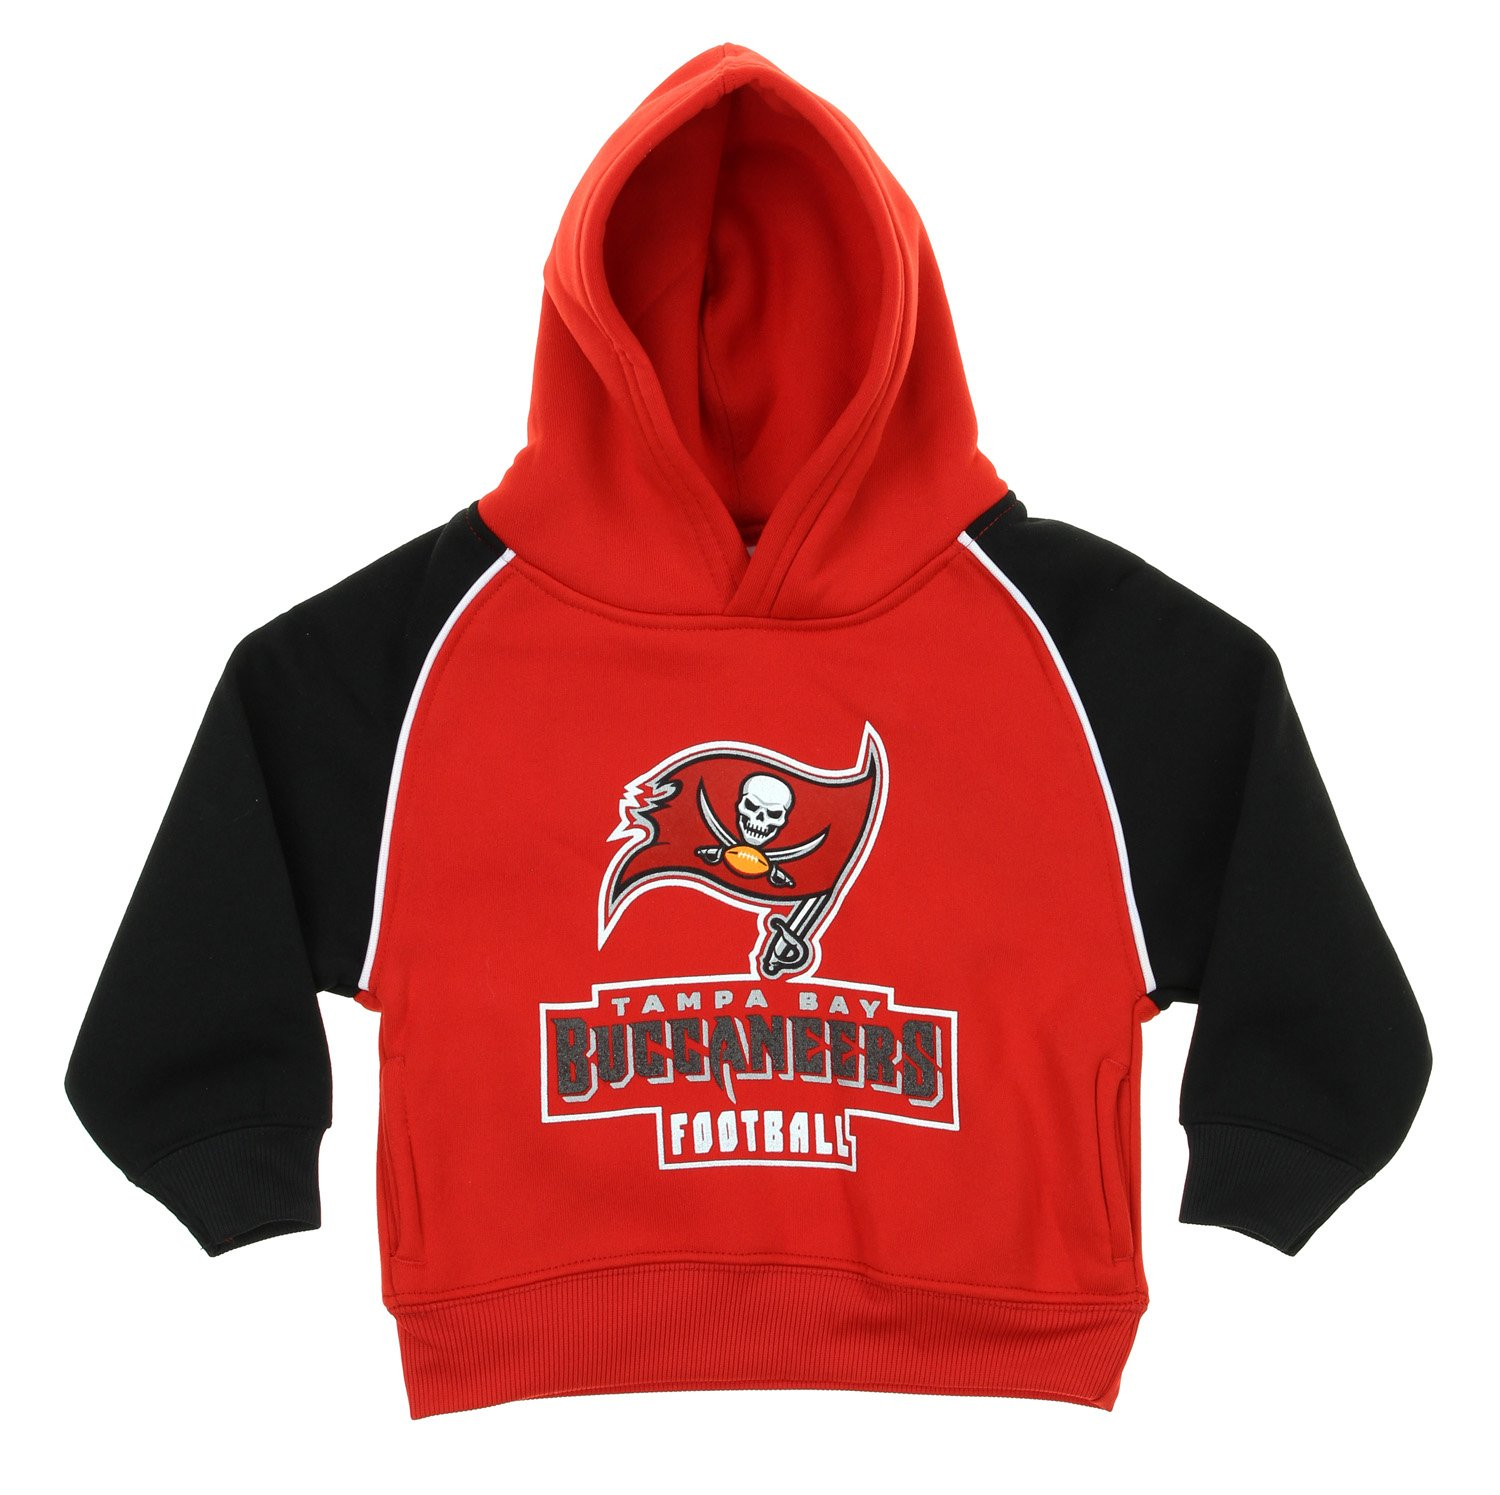 OuterStuff NFL Football Infants & Toddlers Tampa Bay Buccaneers Printed Sweatshirt, Red